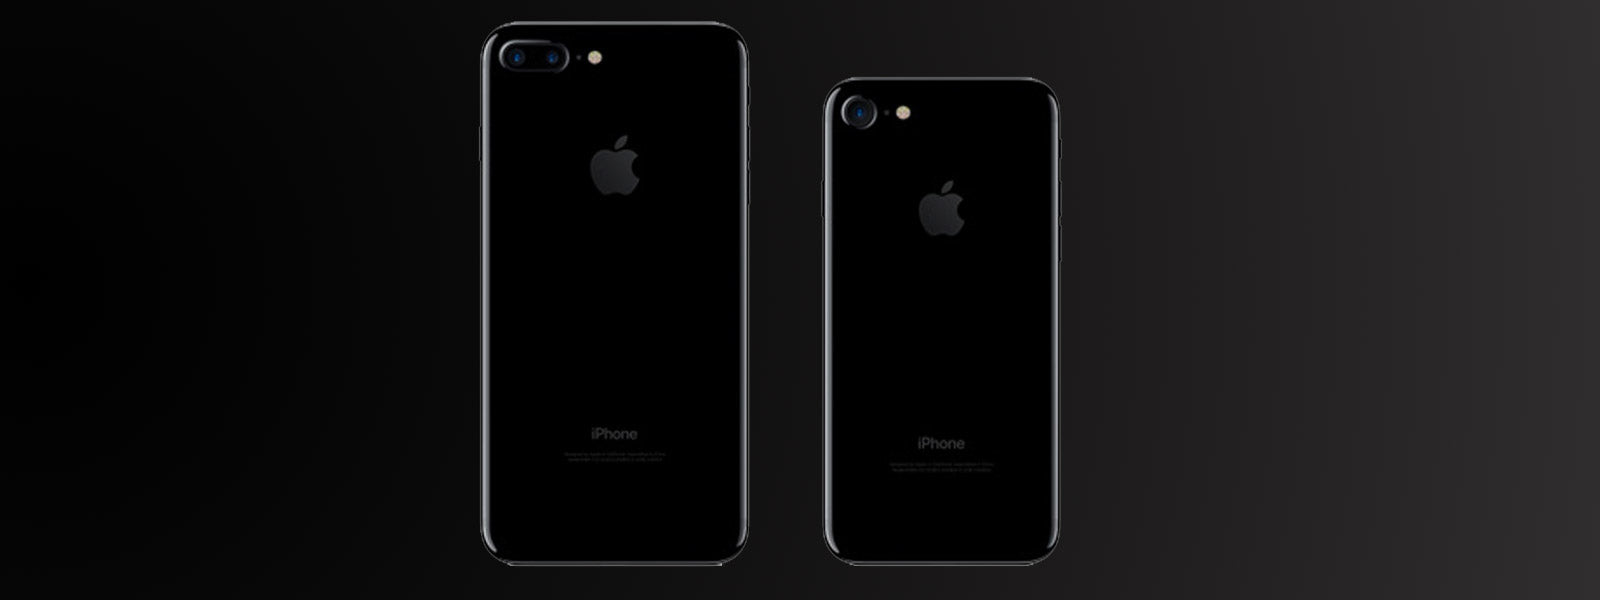 Everything you need to know about the iPhone 7 and iPhone 7 Plus